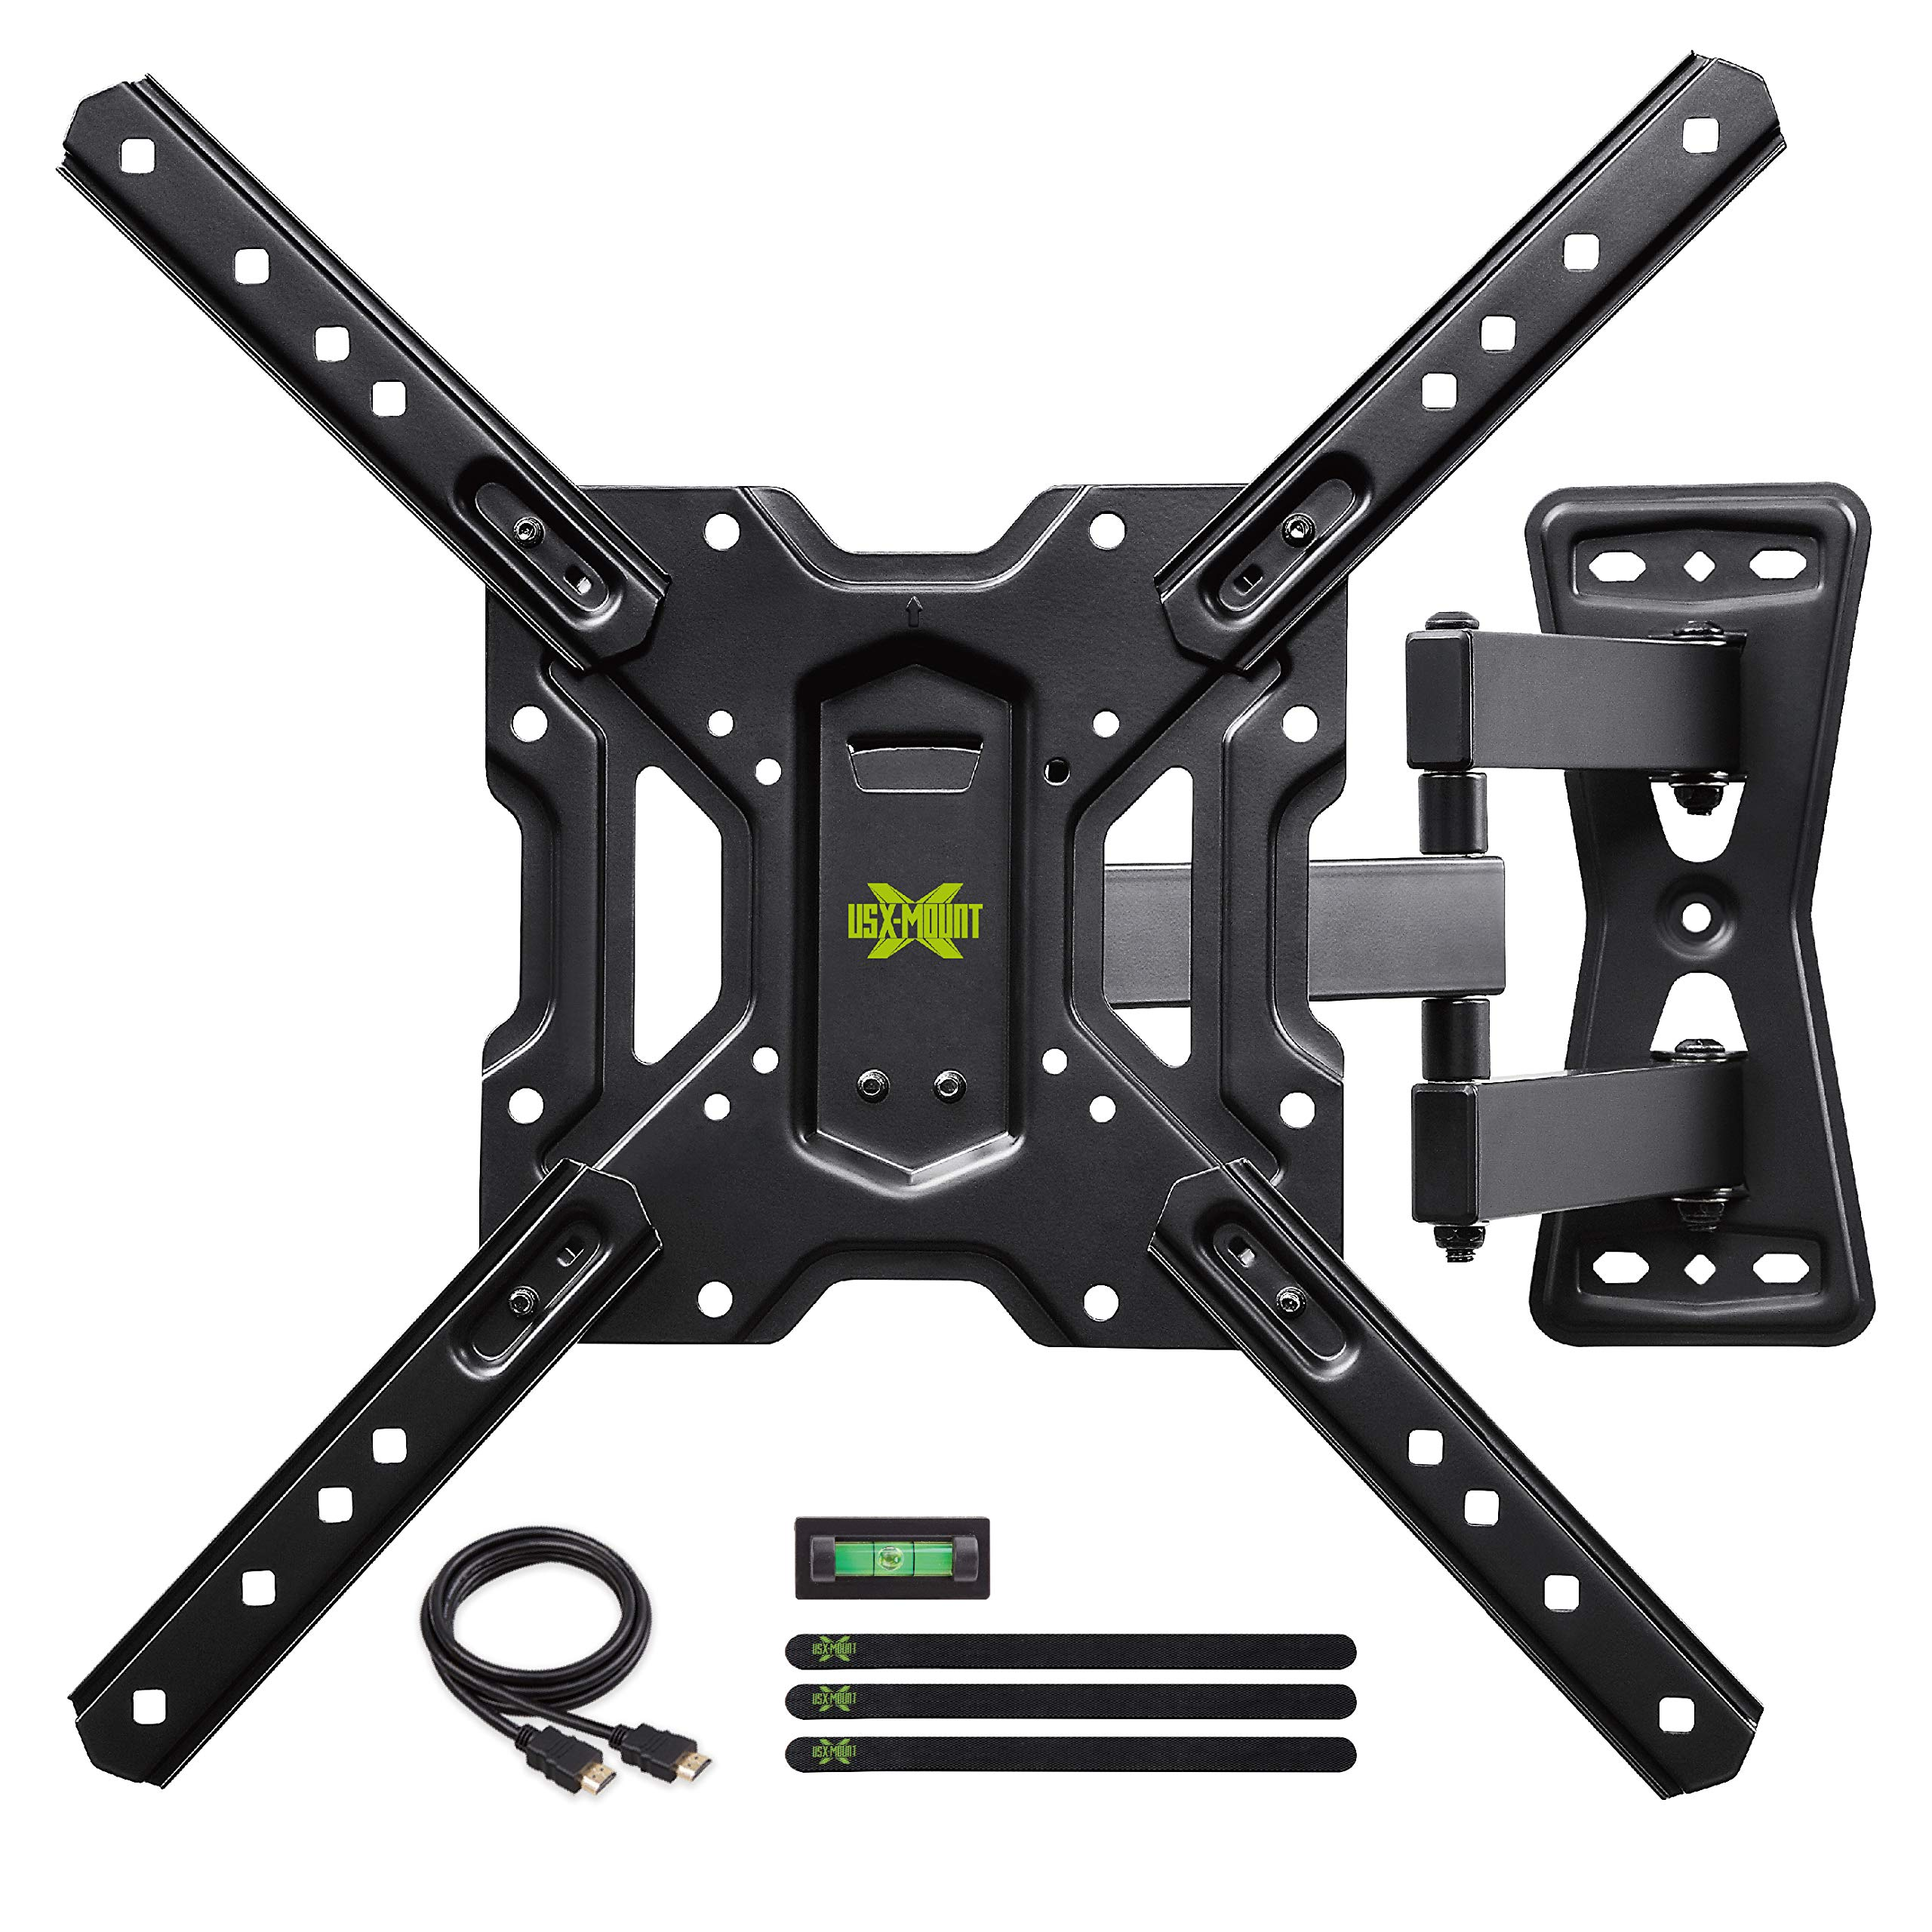 USX MOUNT Full Motion Swivel Articulating Tilt TV Wall Mount Bracket for 26-55'' LED, OLED, 4K TVs-Fit for 32, 40, 50 TV with VESA Up to 400x400mm-Weight Capacity Up to 60lbs by USX MOUNT